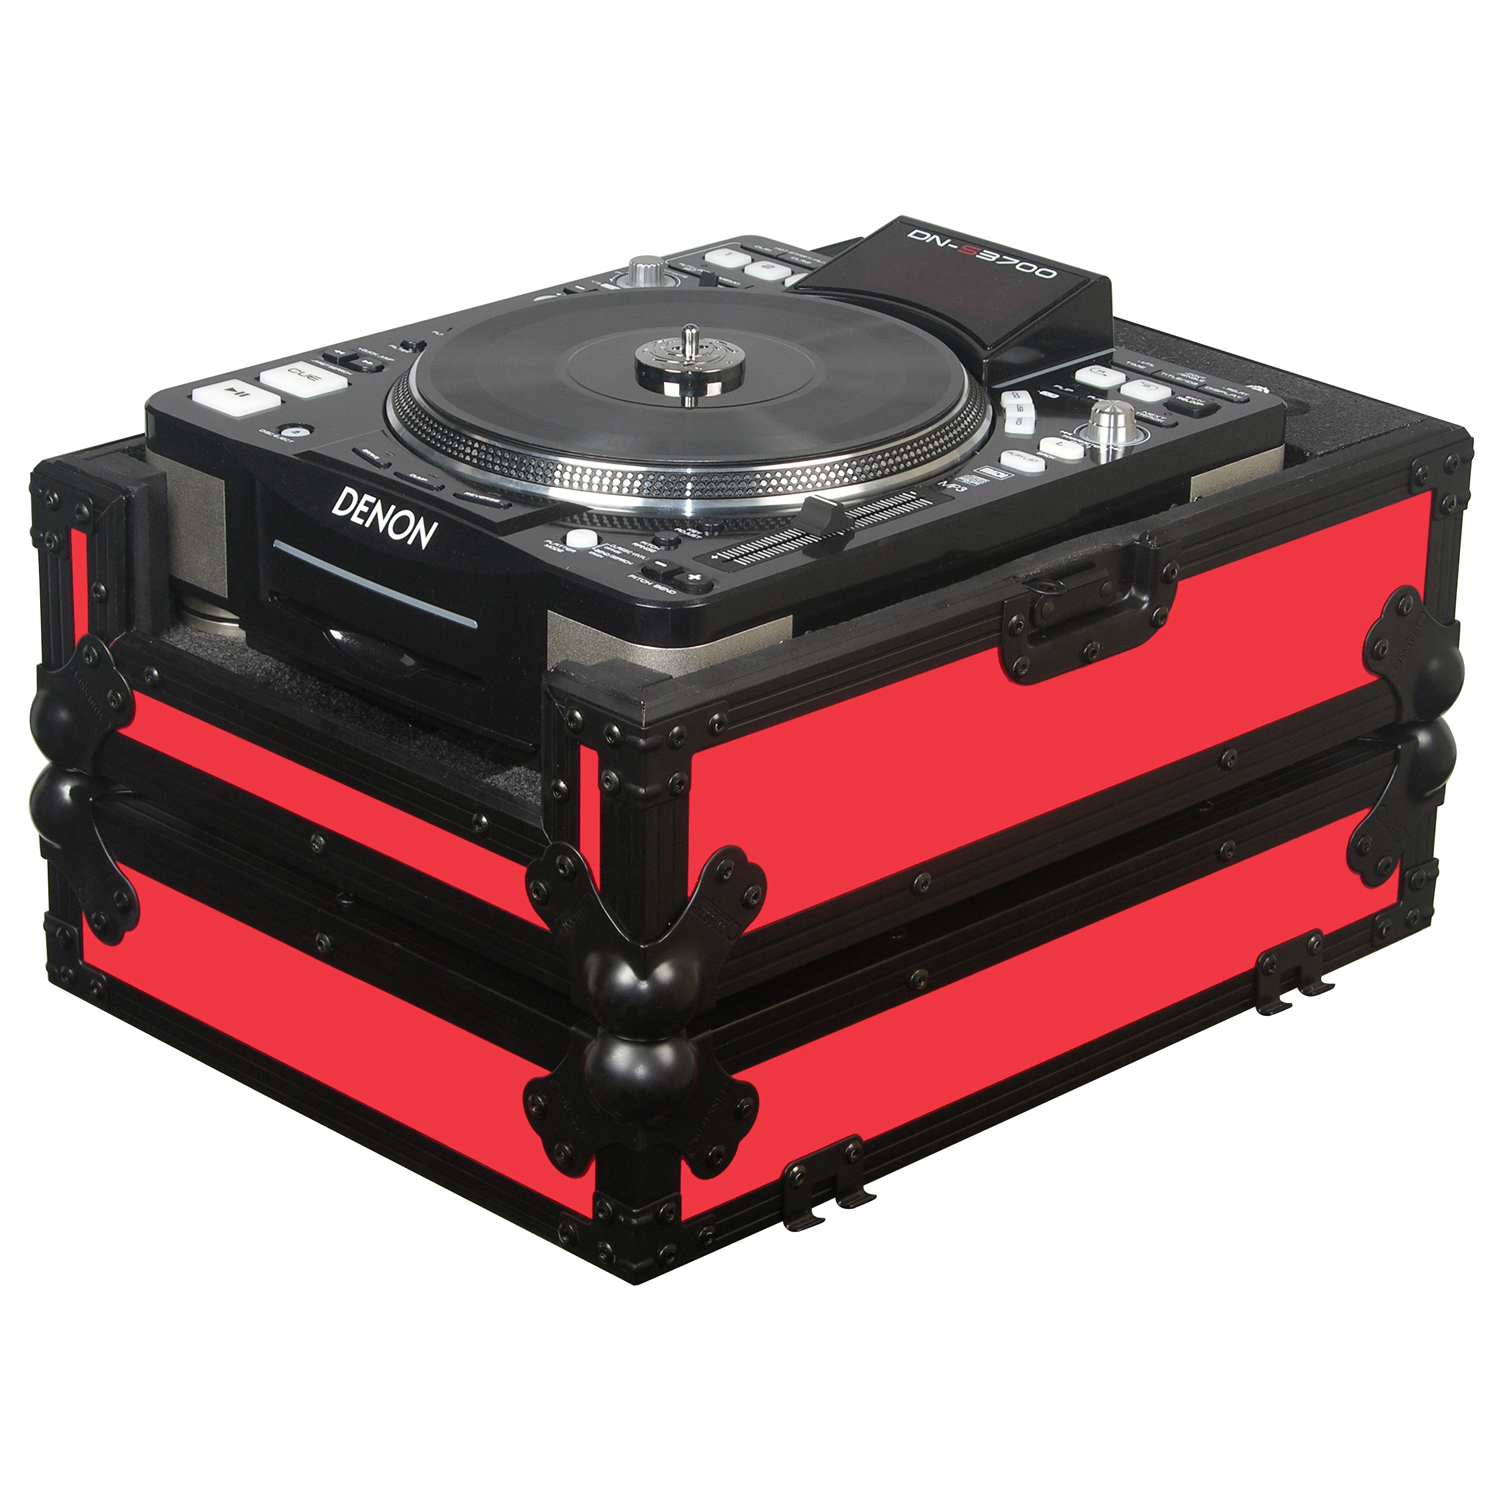 Red universal large format media player case